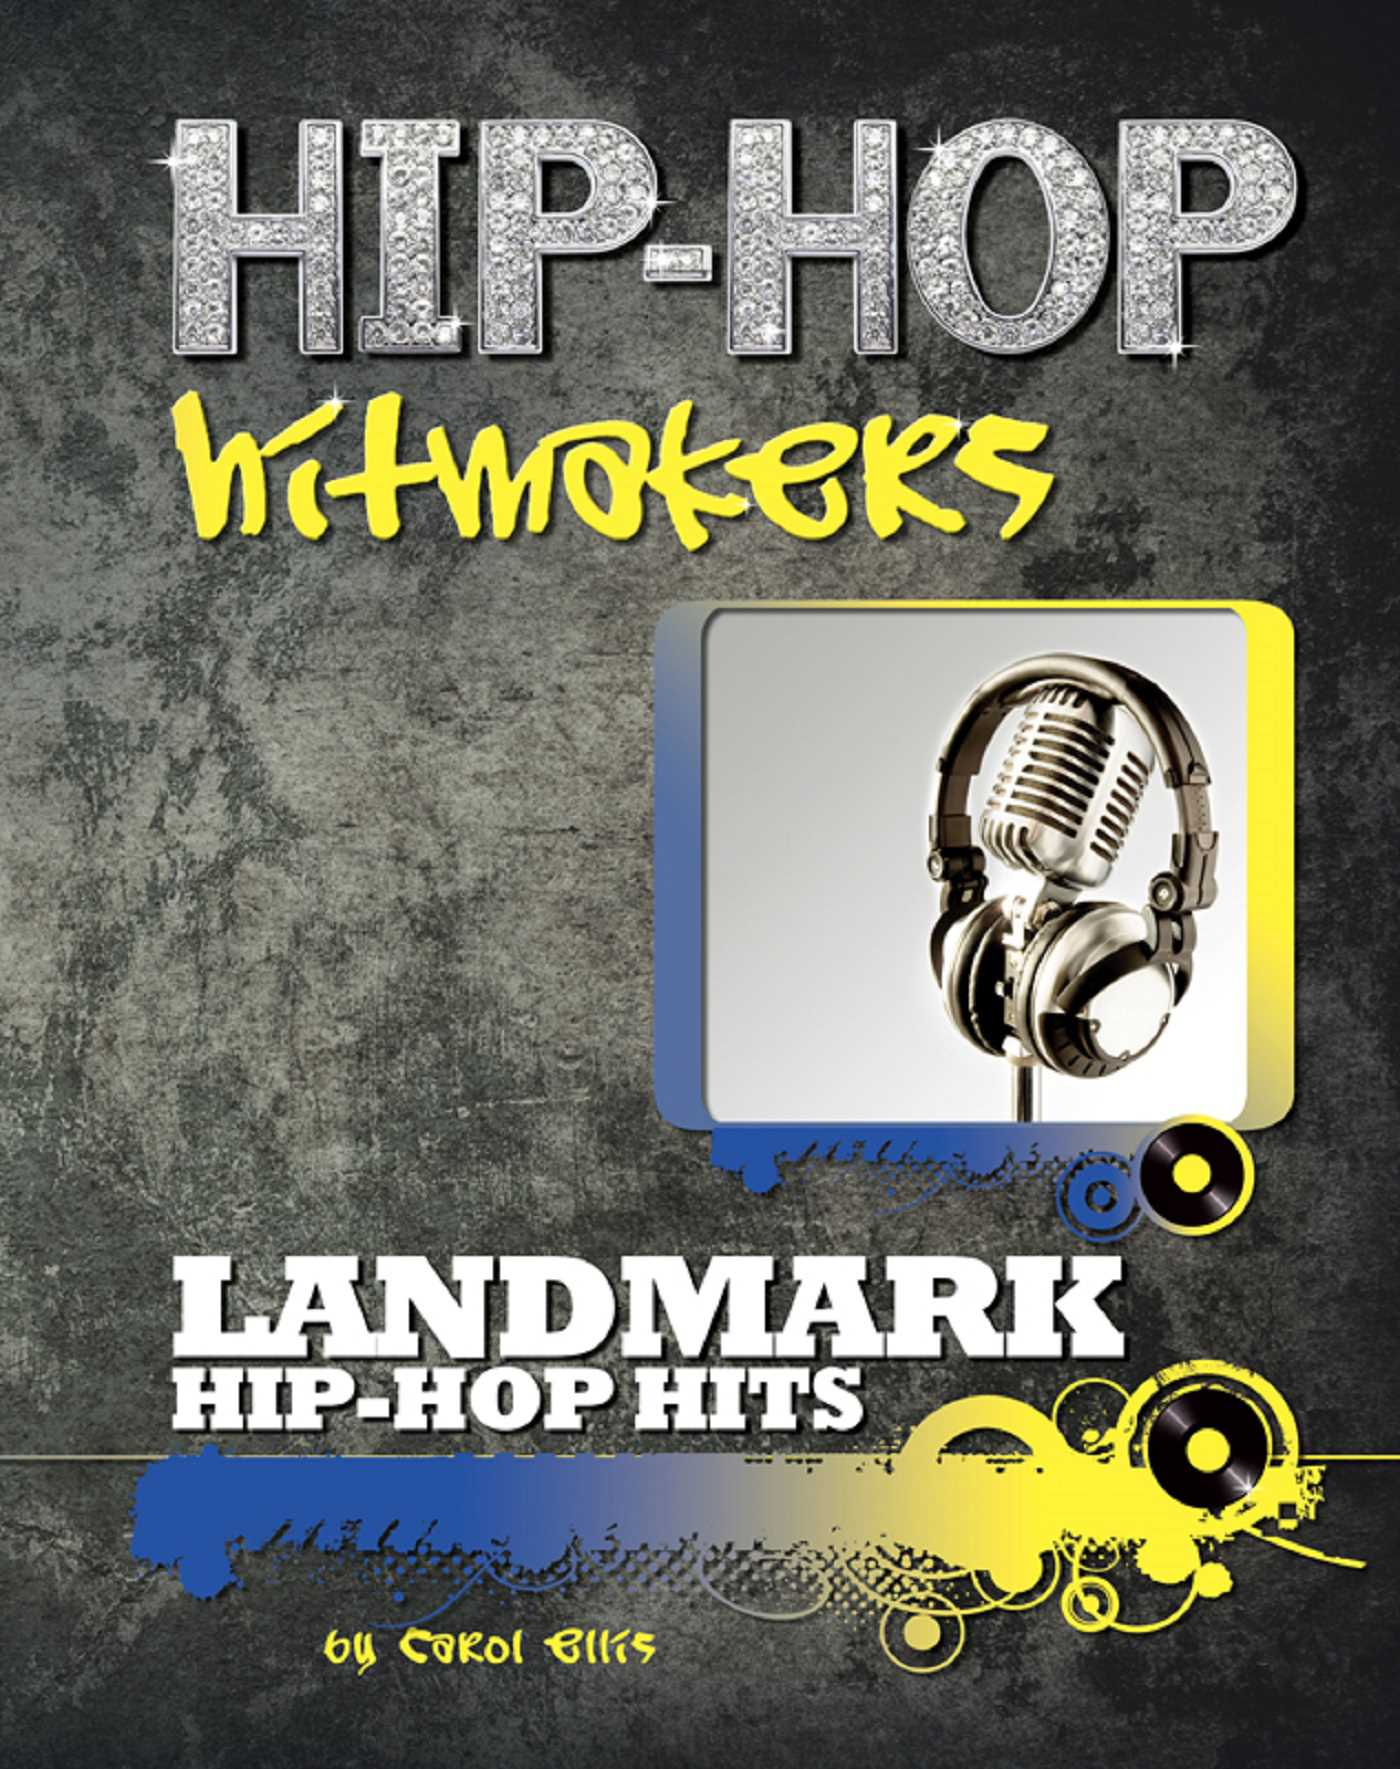 the history of hip hop and macklemores impact on the genre 10 posts published by nickmigneault, rogerrong2013, terrysang, rkorsuns, bozmeral, joseph, stephenocconnor, zach feldman, joaryliu, and mdfritz5 during february 2013.